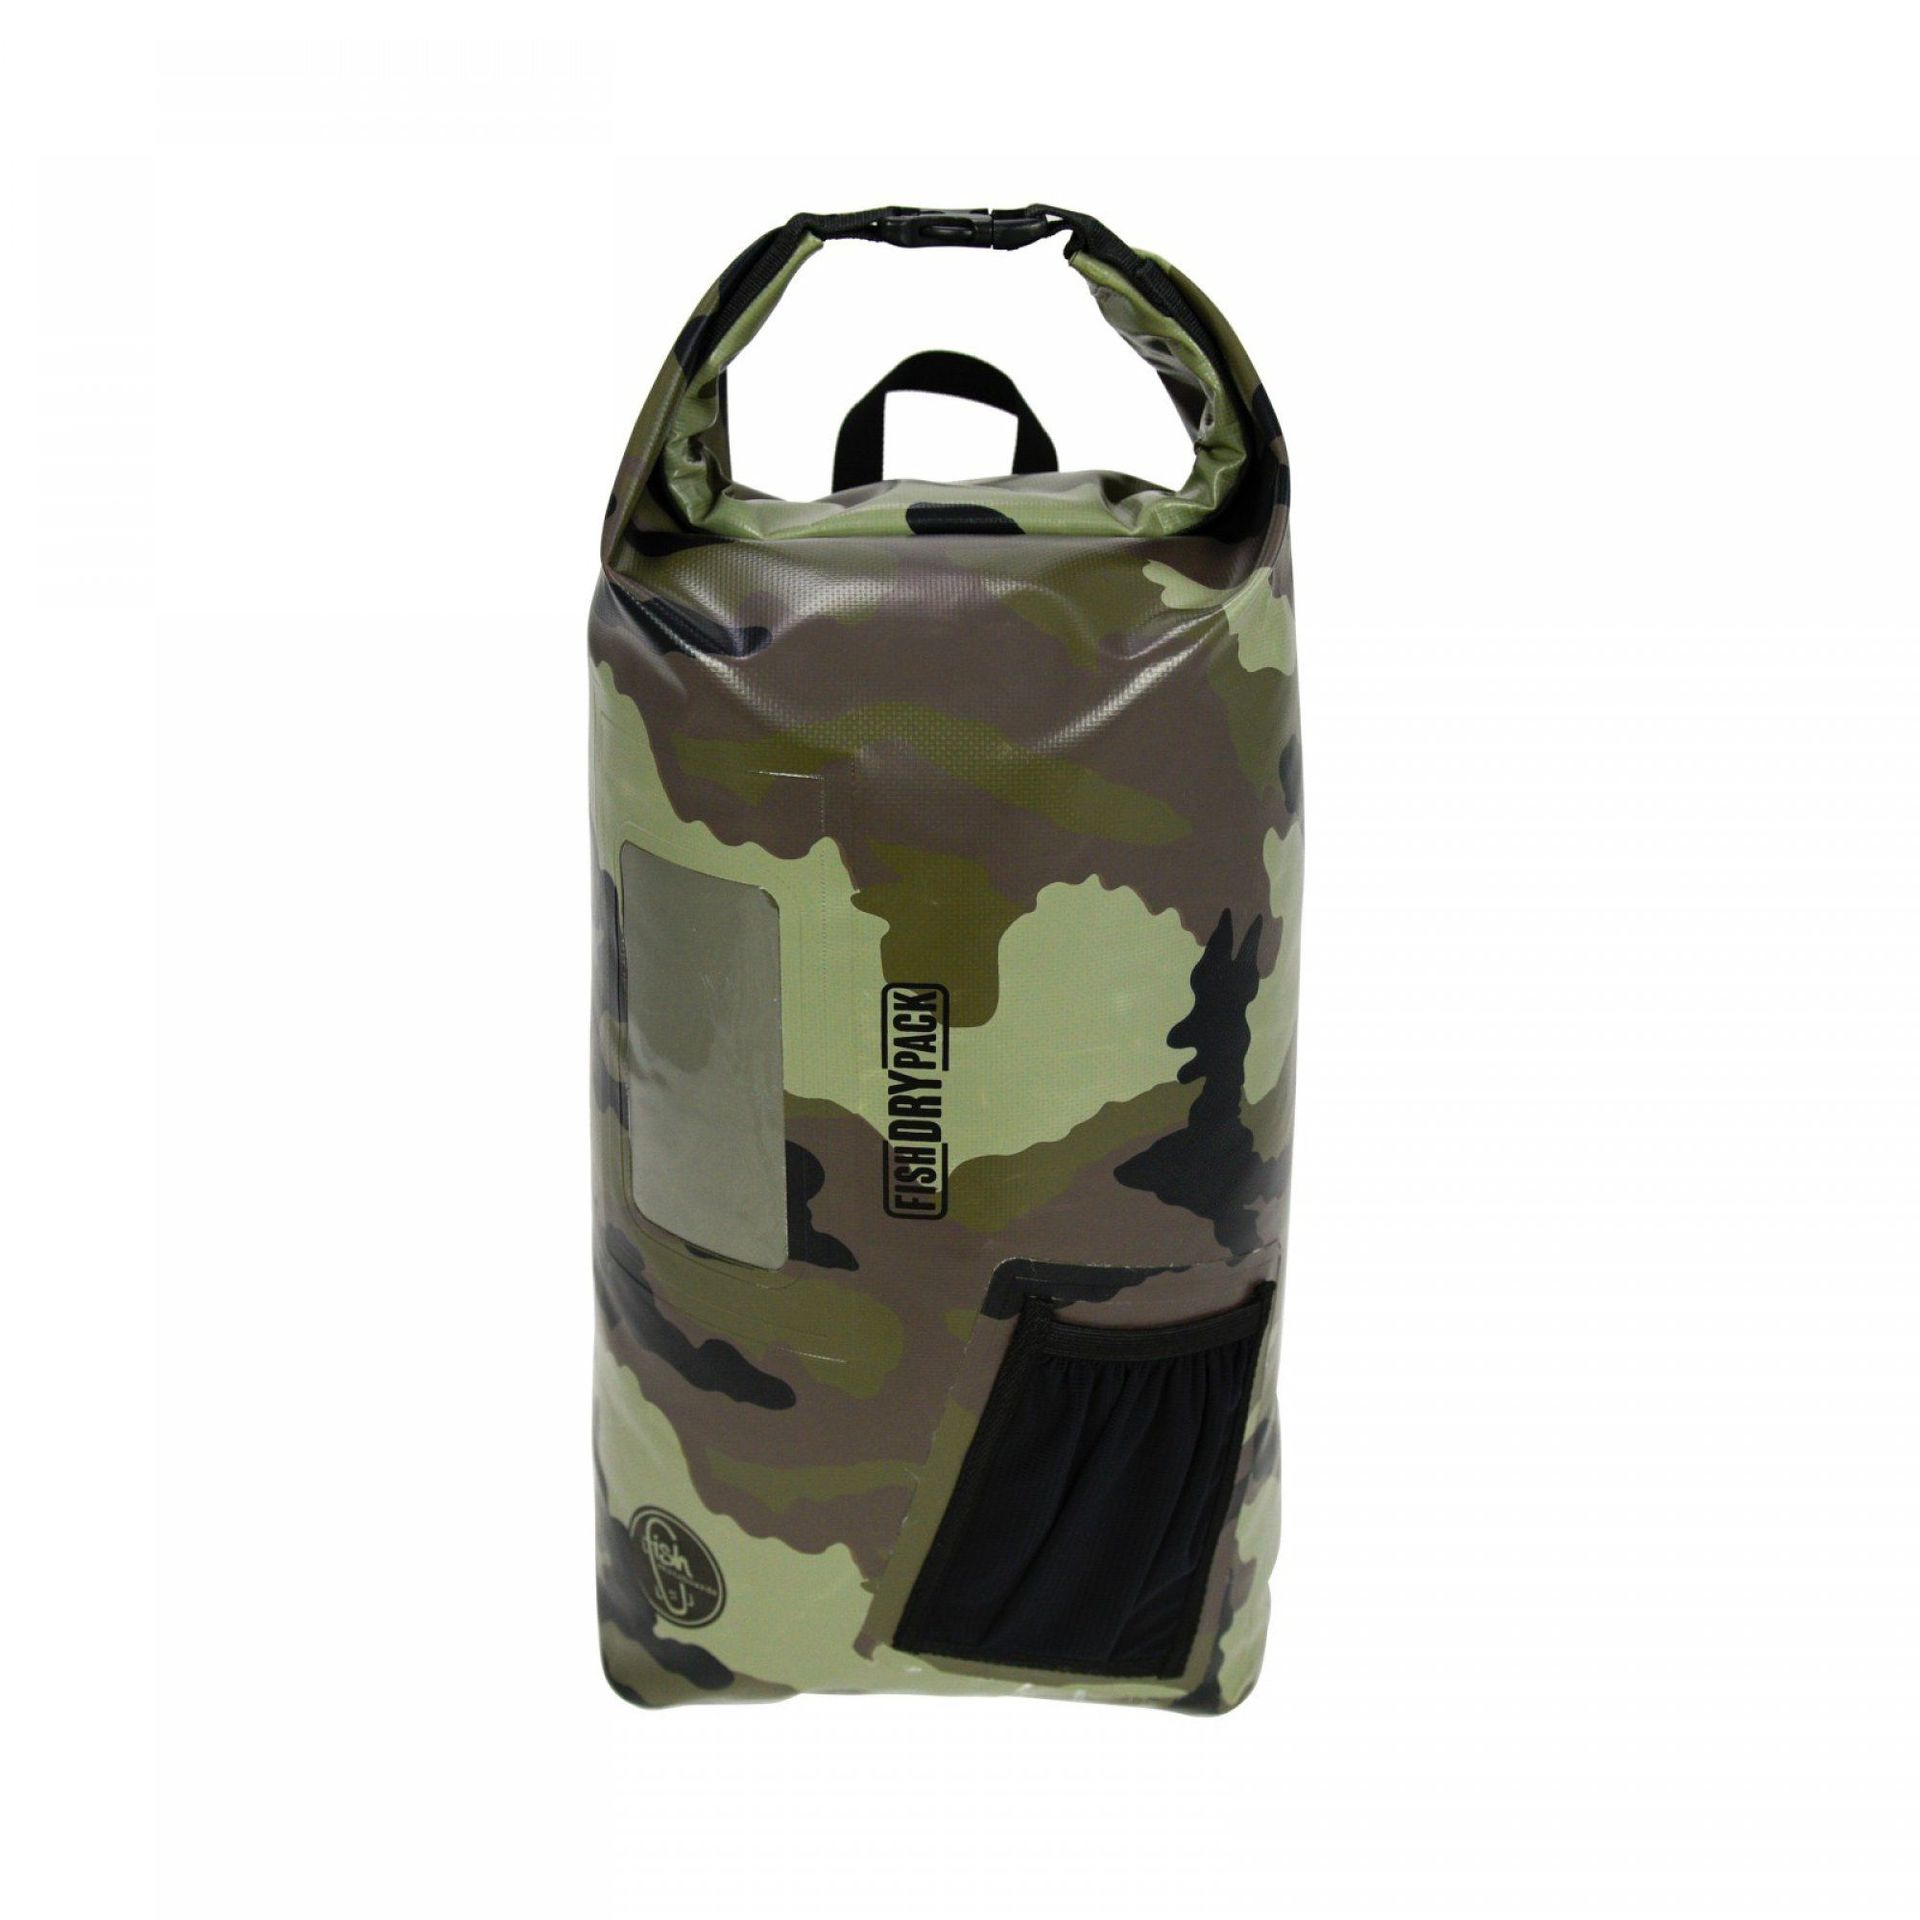 PLECAK FISH SKATEBOARDS FISH DRY PACK 18L CAMO 1